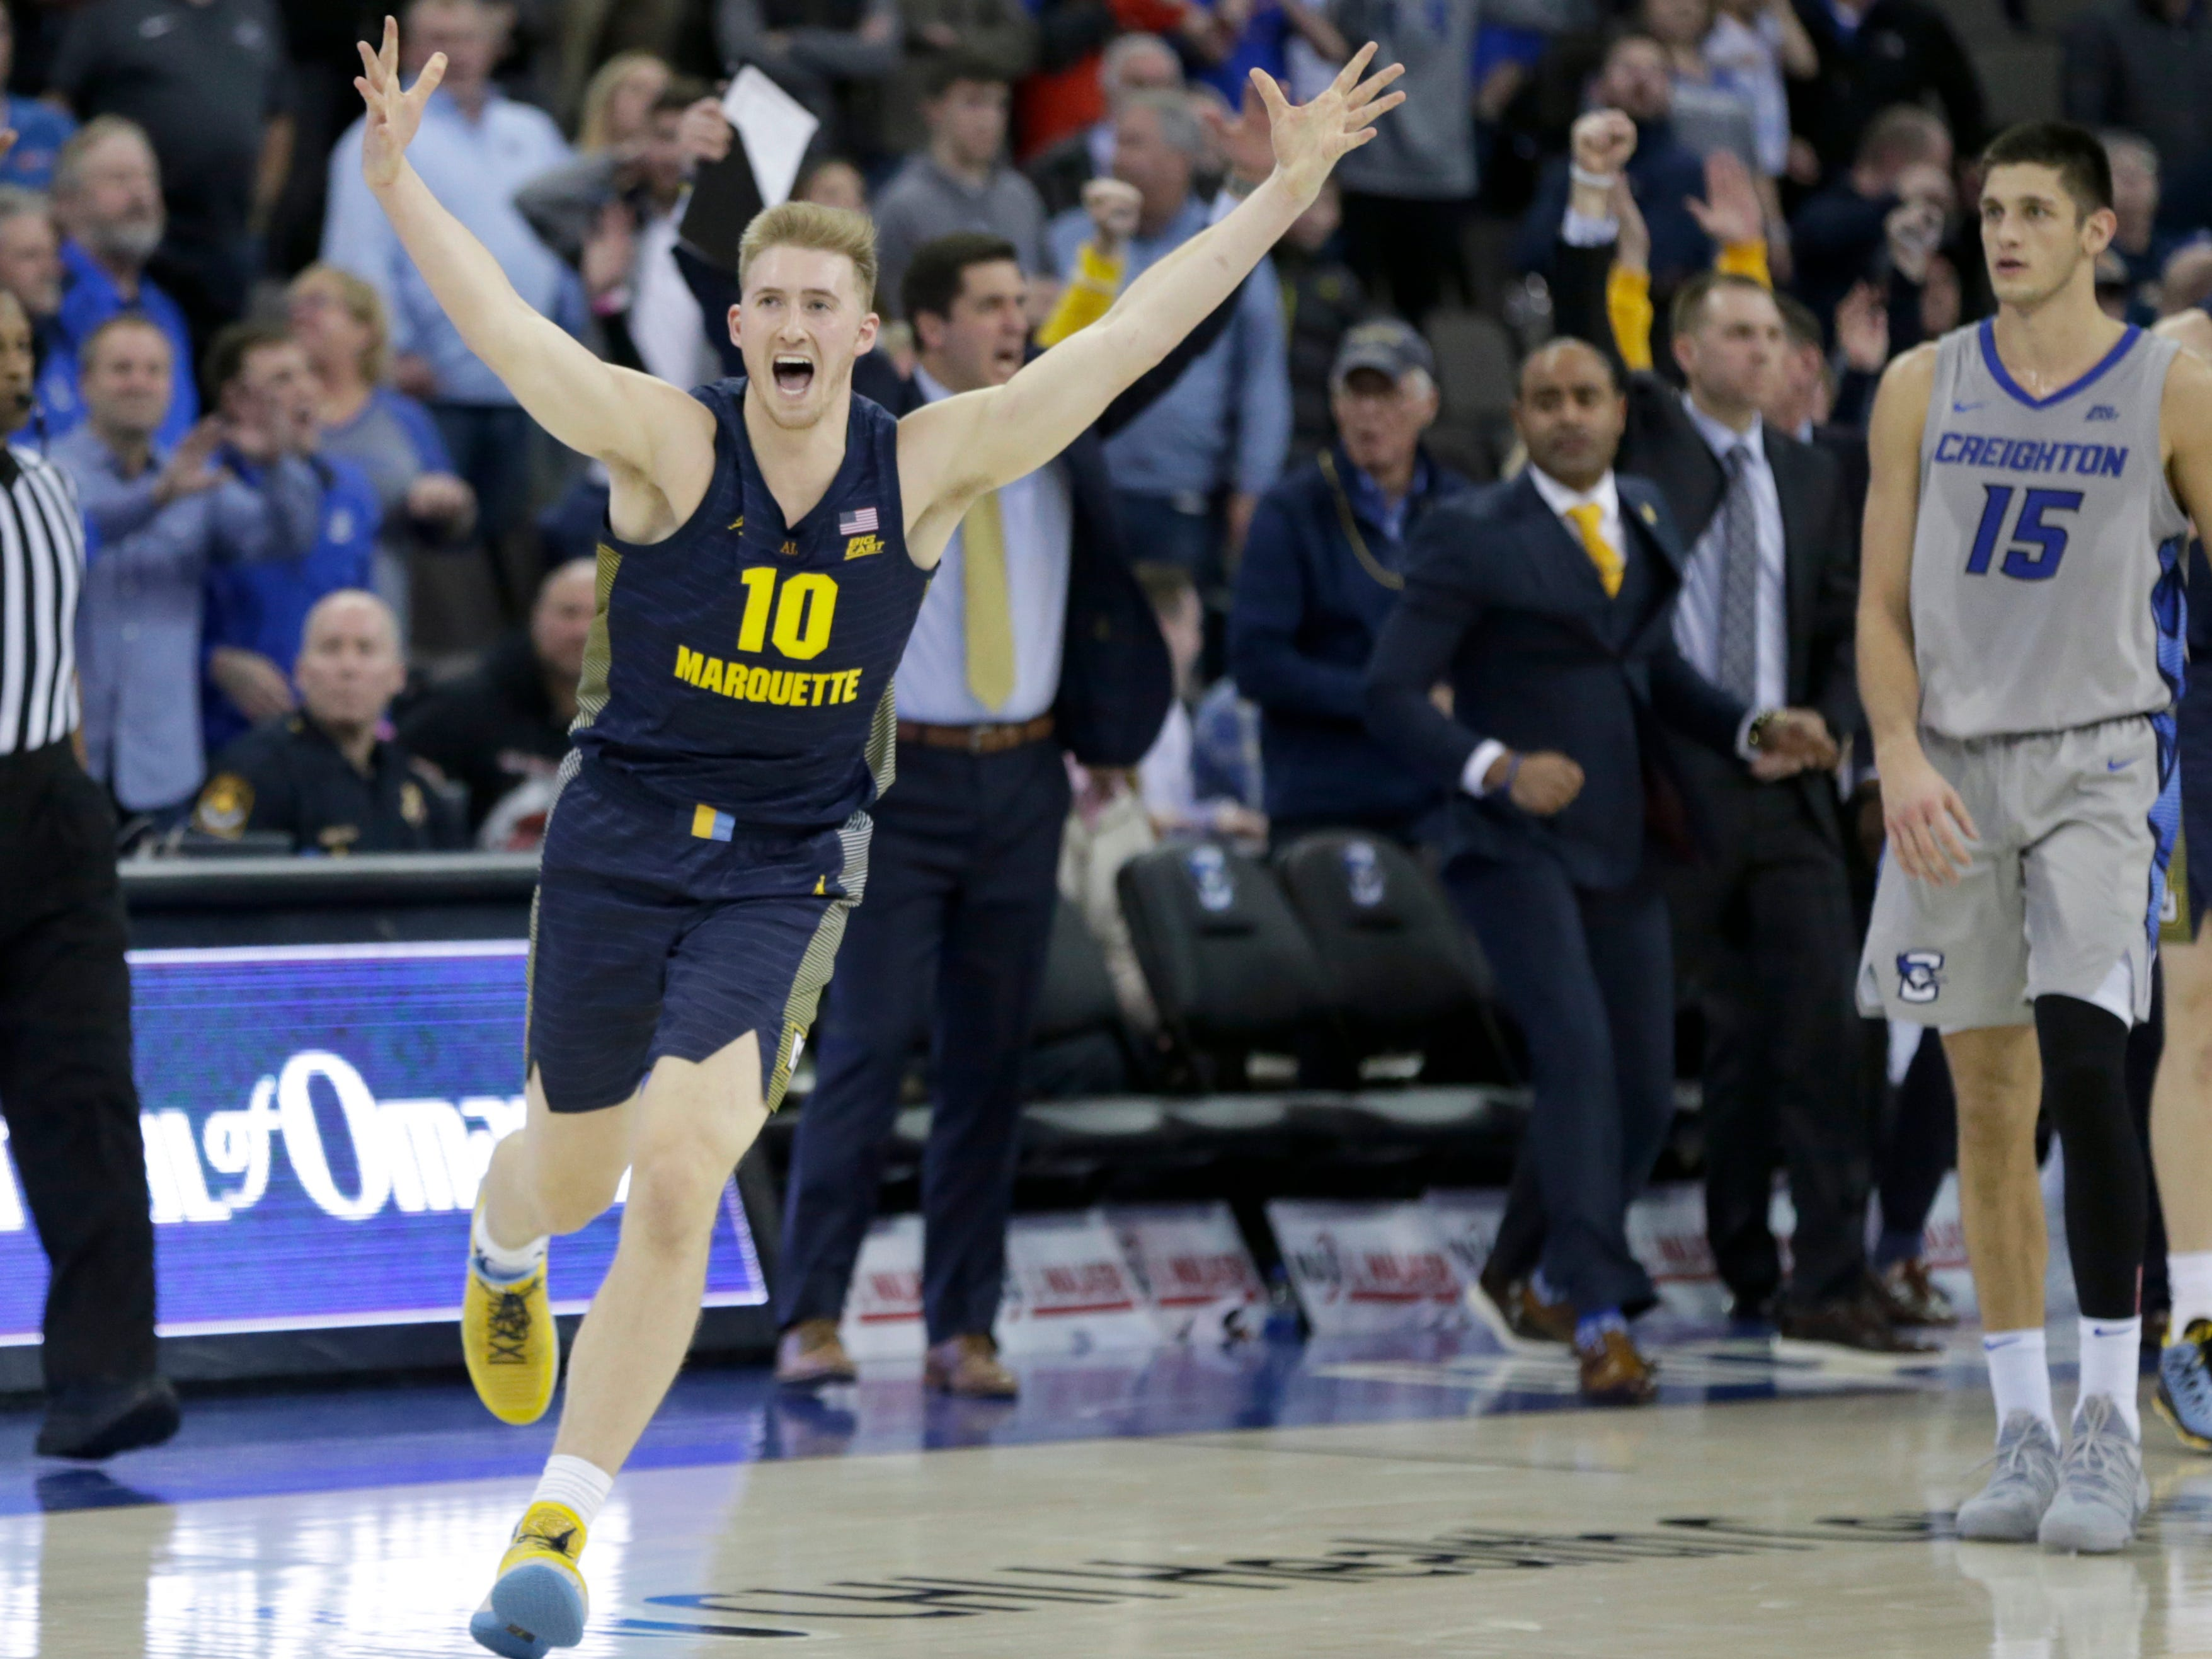 Sam Hauser of Marquette celebrates after hitting a buzzer-beating three-pointer at the end of regulation to send the Golden Eagles' game against Creighton into overtime.